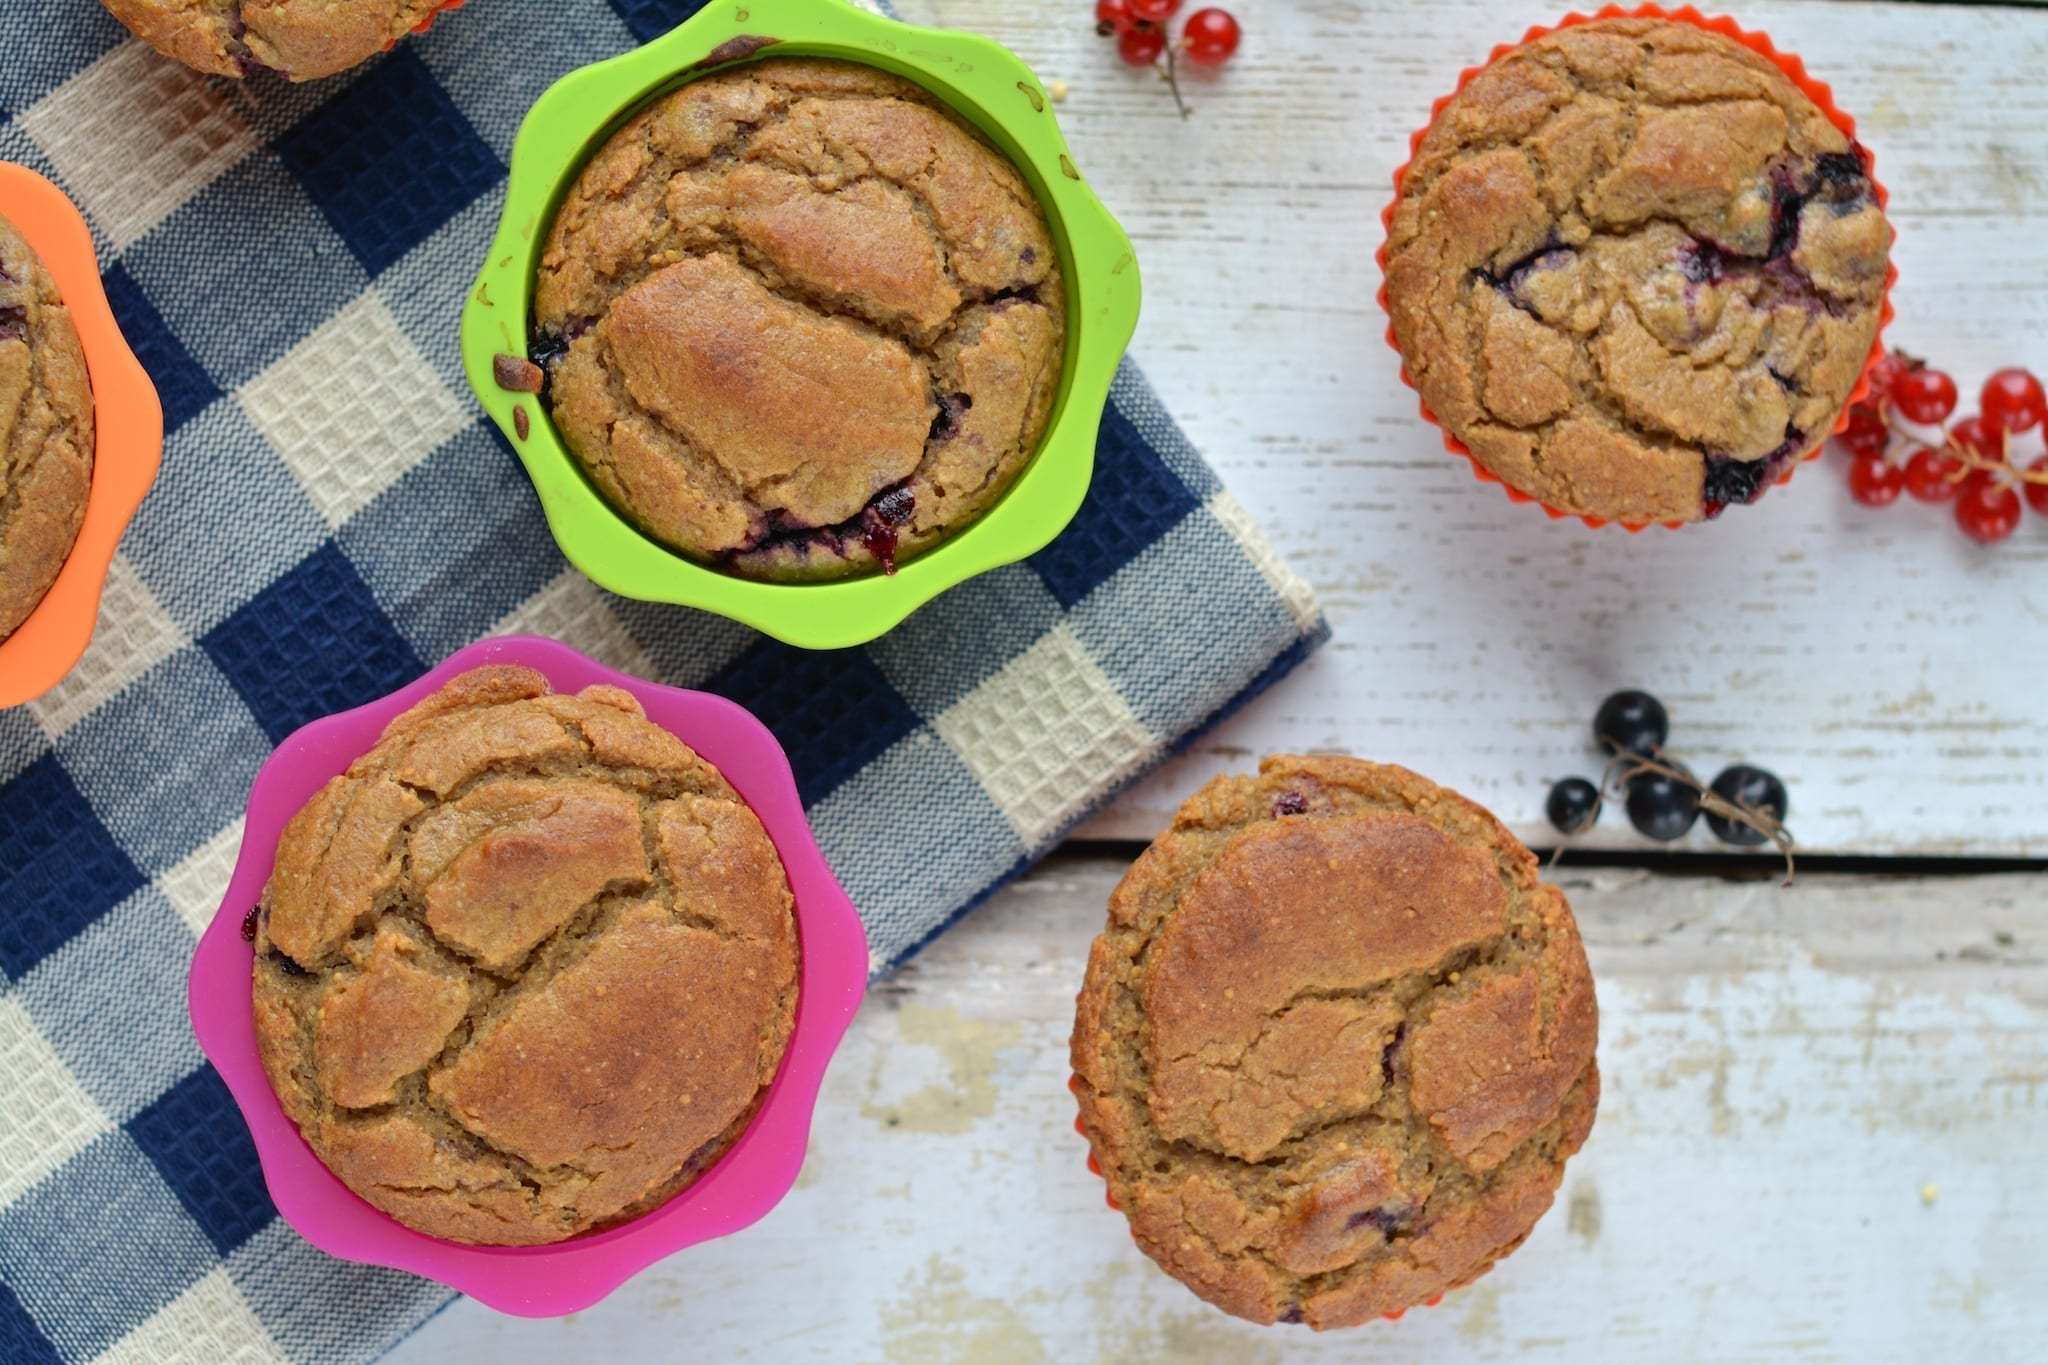 Millet-Buckwheat-Fig Muffins with Blackcurrants